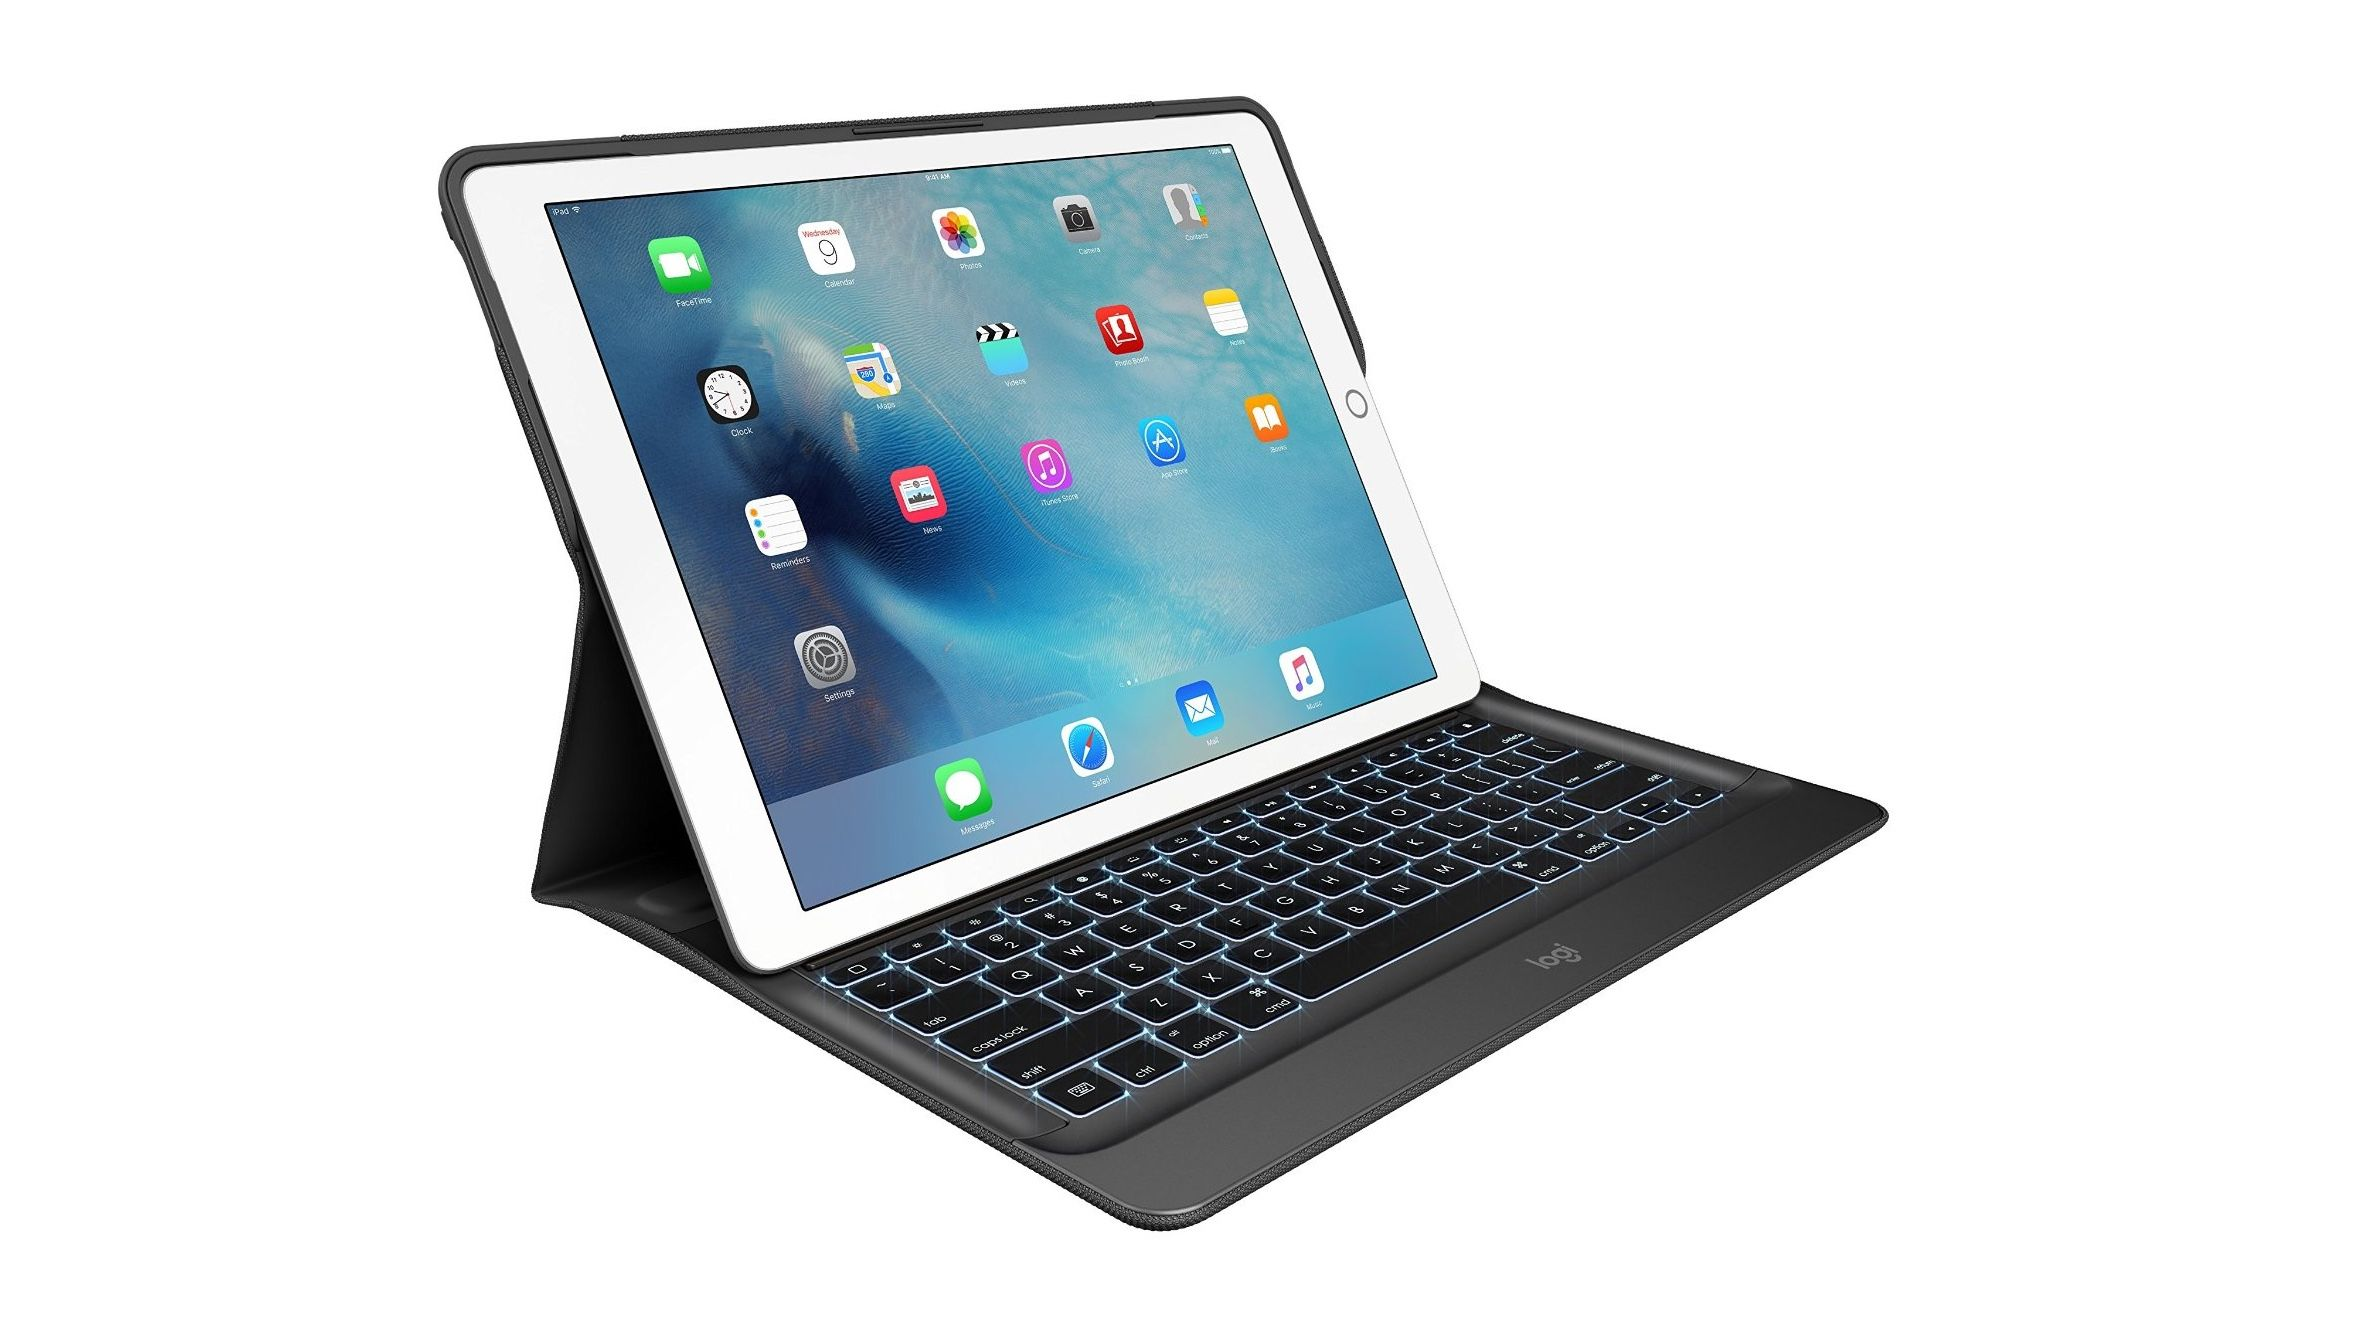 10 Best iPad Pro Cases - Protective iPad Pro Cases and Covers